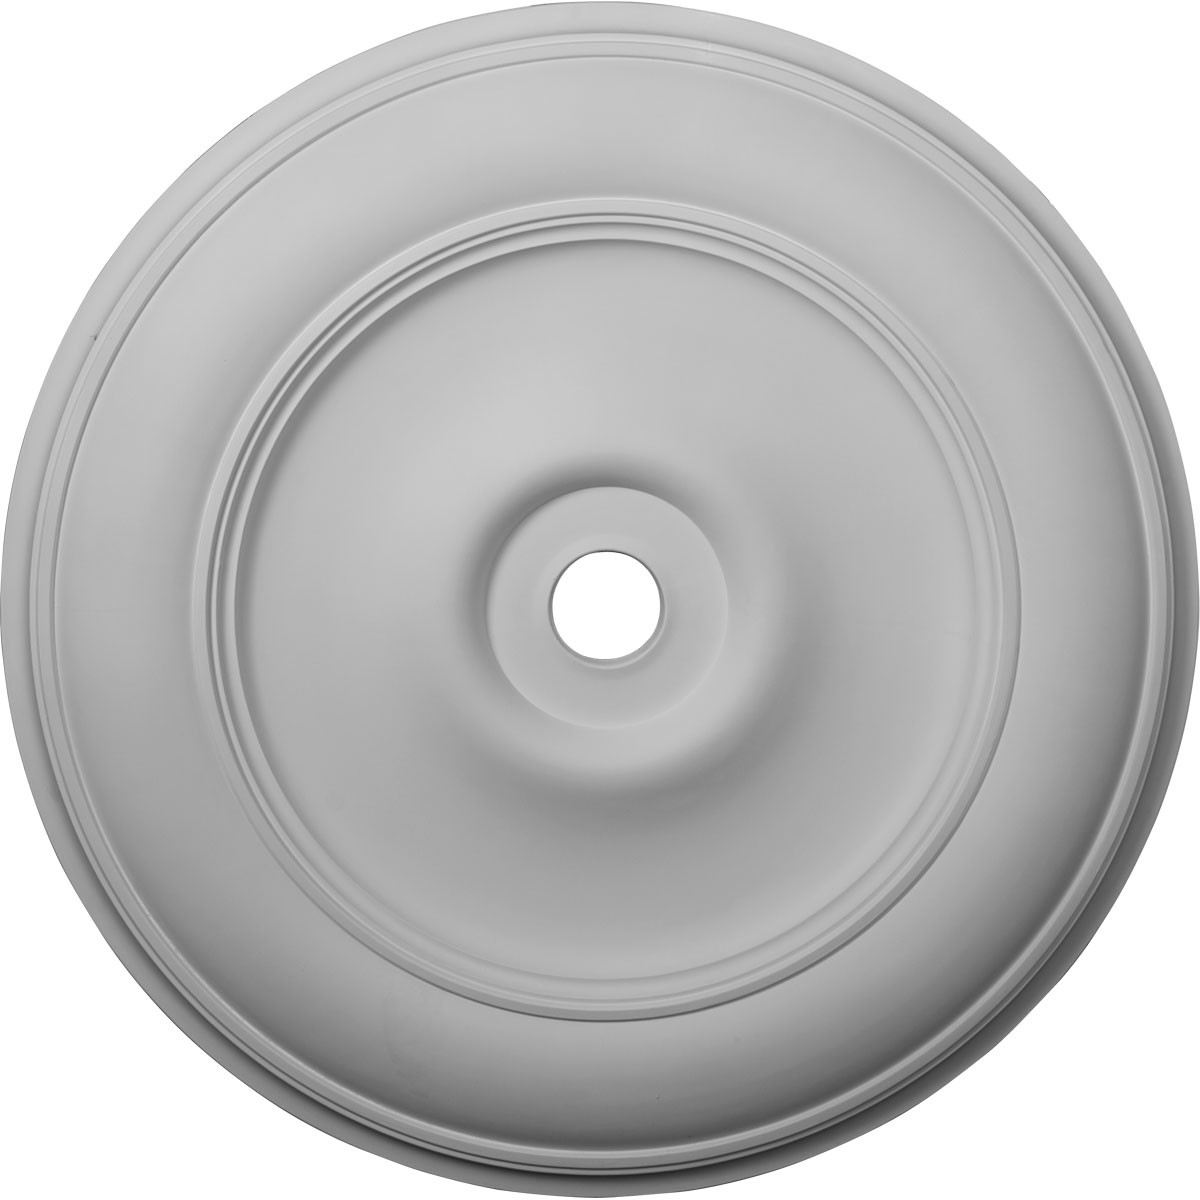 """EM-CM44CL - 44 1/2""""OD x 4""""ID x 4 """"P Classic Ceiling Medallion (Fits Canopies up to 8 1/4"""")"""